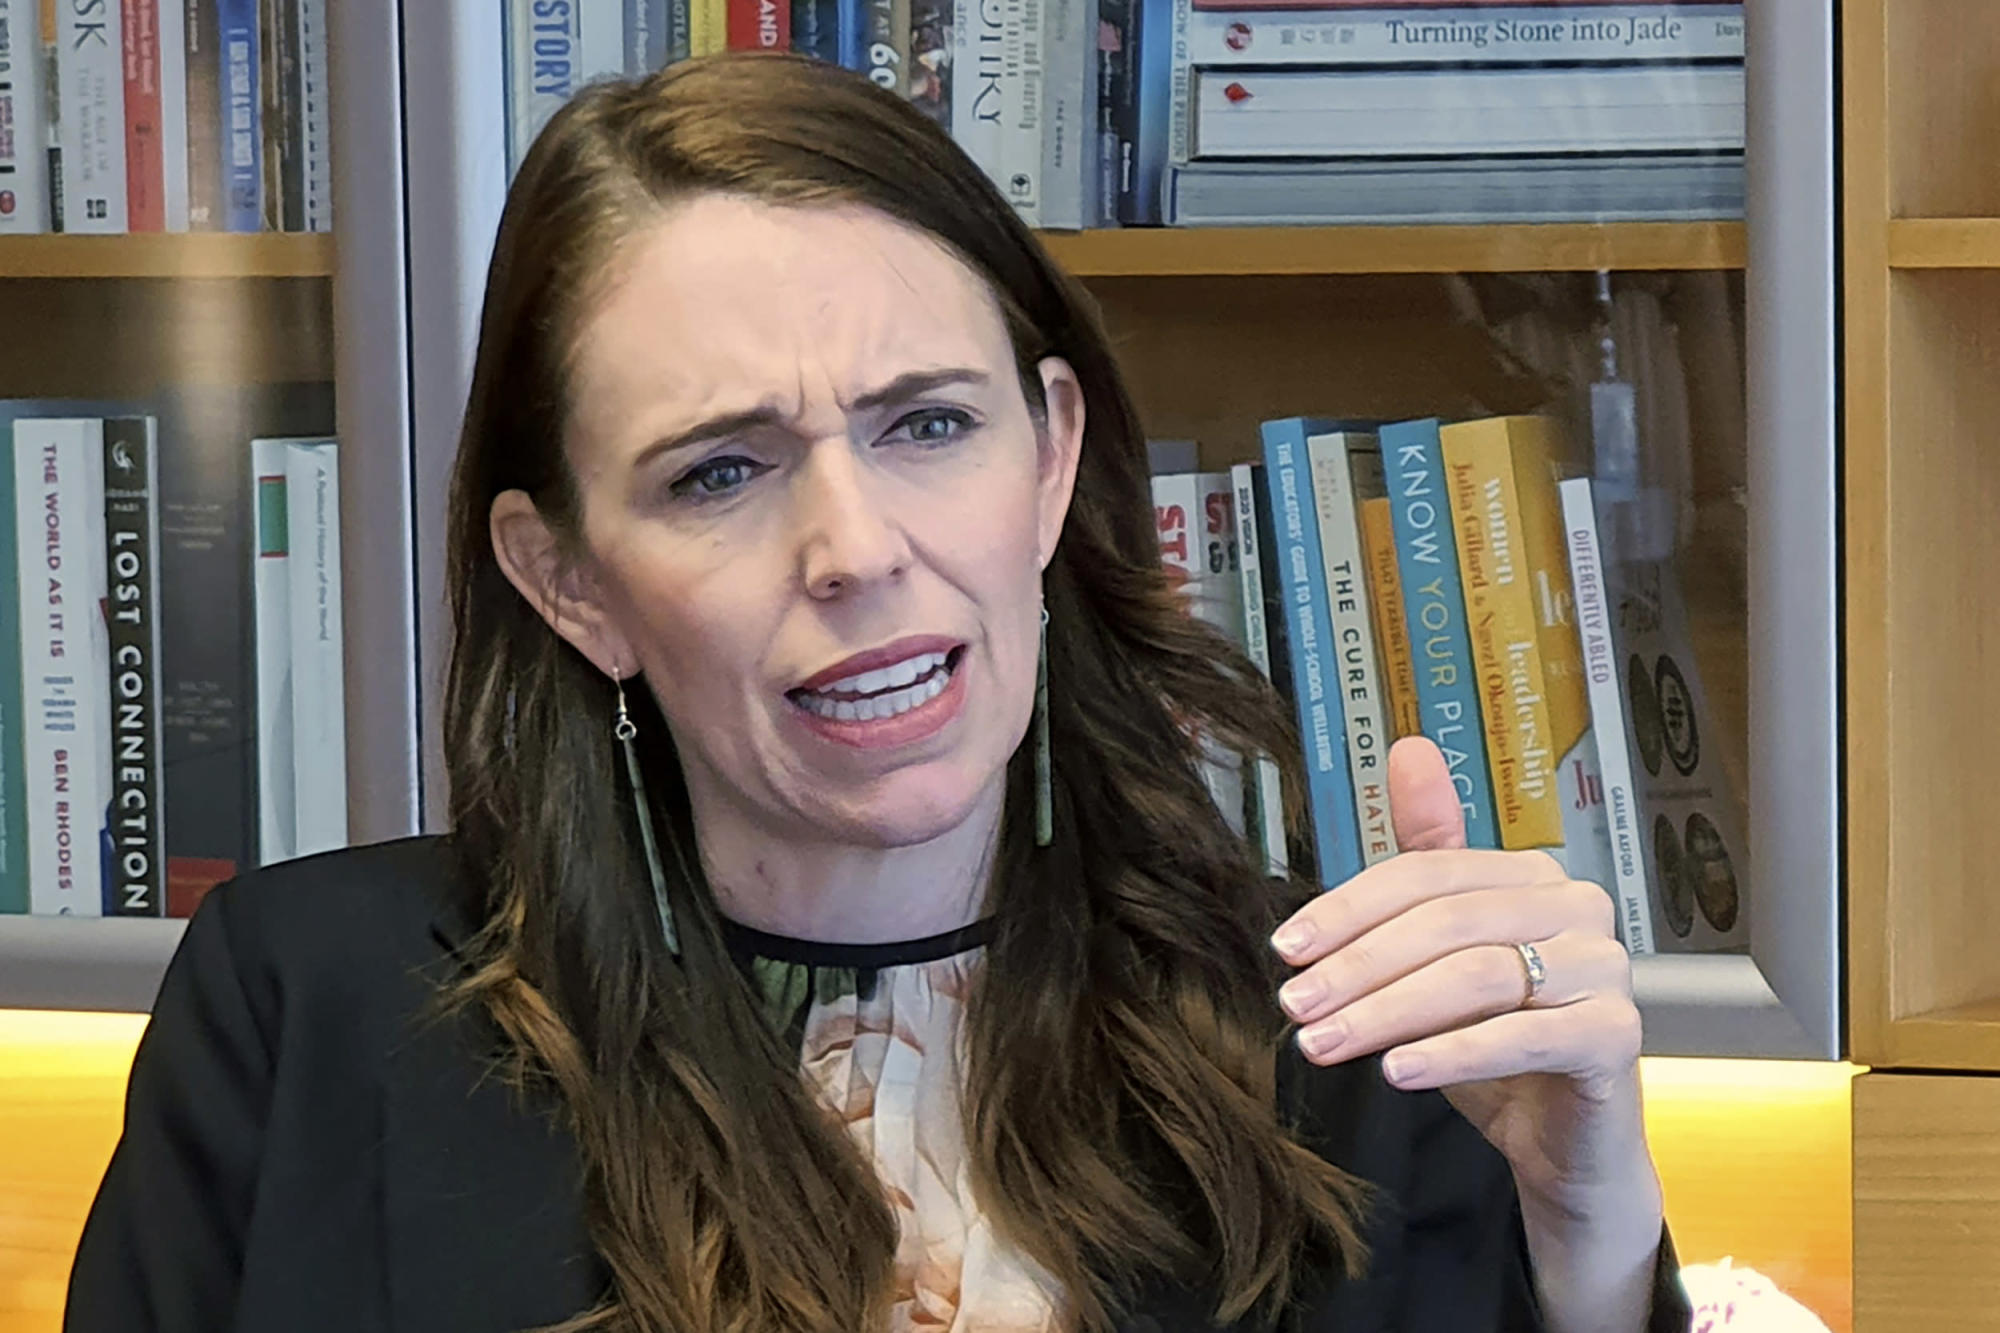 New Zealand leader Ardern takes tougher stance on China – Yahoo News